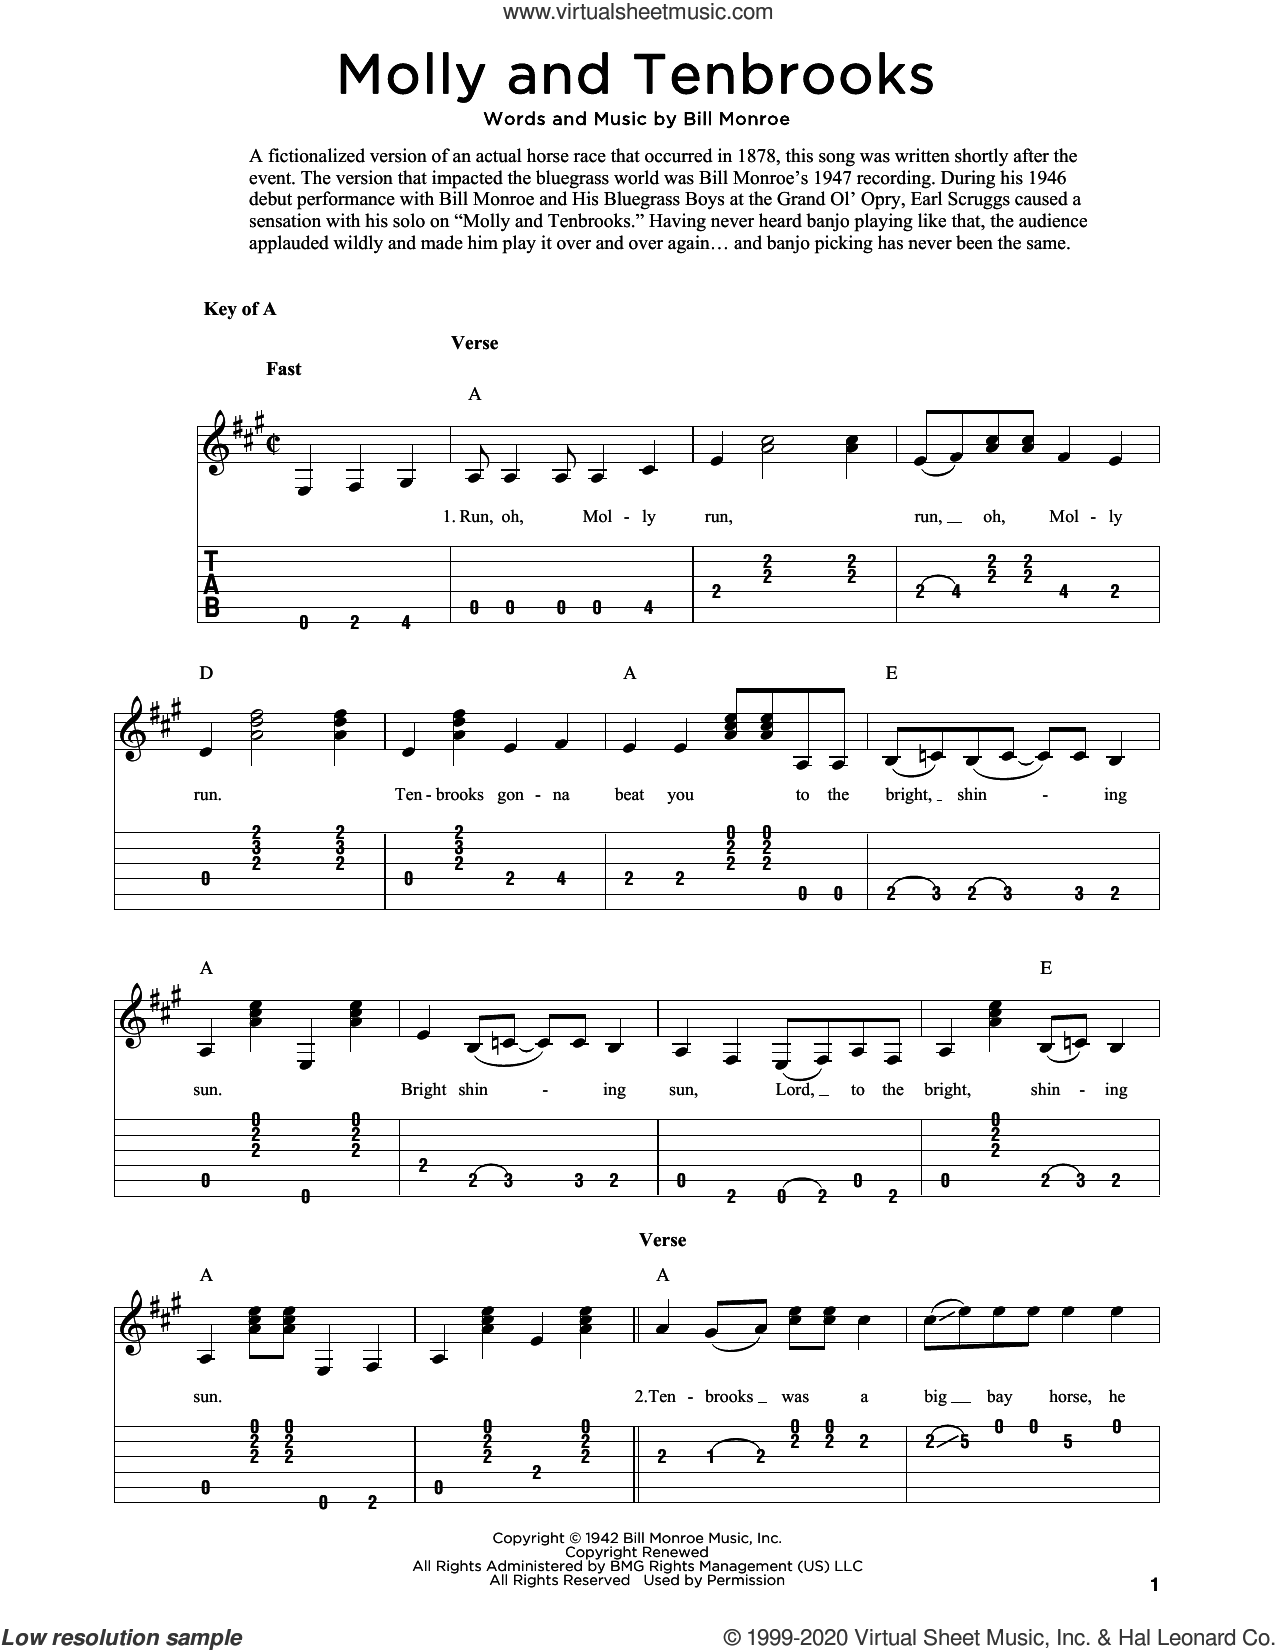 Molly And Tenbrooks (arr. Fred Sokolow) sheet music for guitar solo by Bill Monroe and Fred Sokolow, intermediate skill level